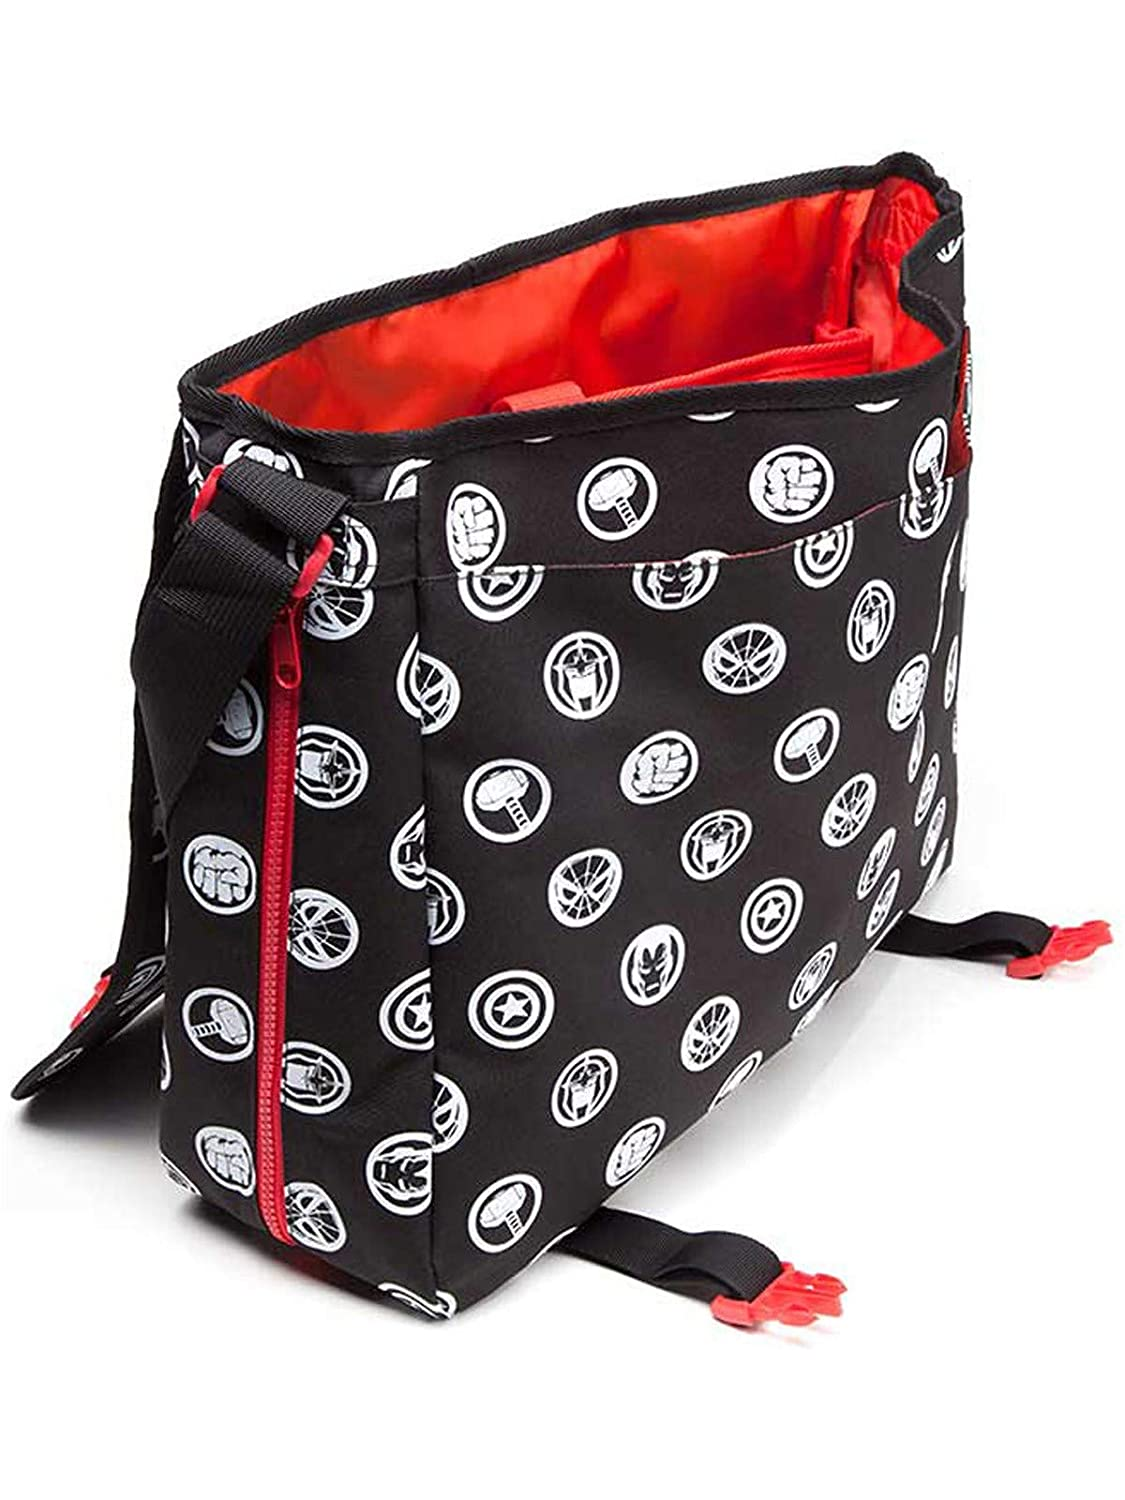 Rojo 46 cm Mb110902Mar Messenger Bag Marvel COMICS All-Over Hero Crests Negro Unisex